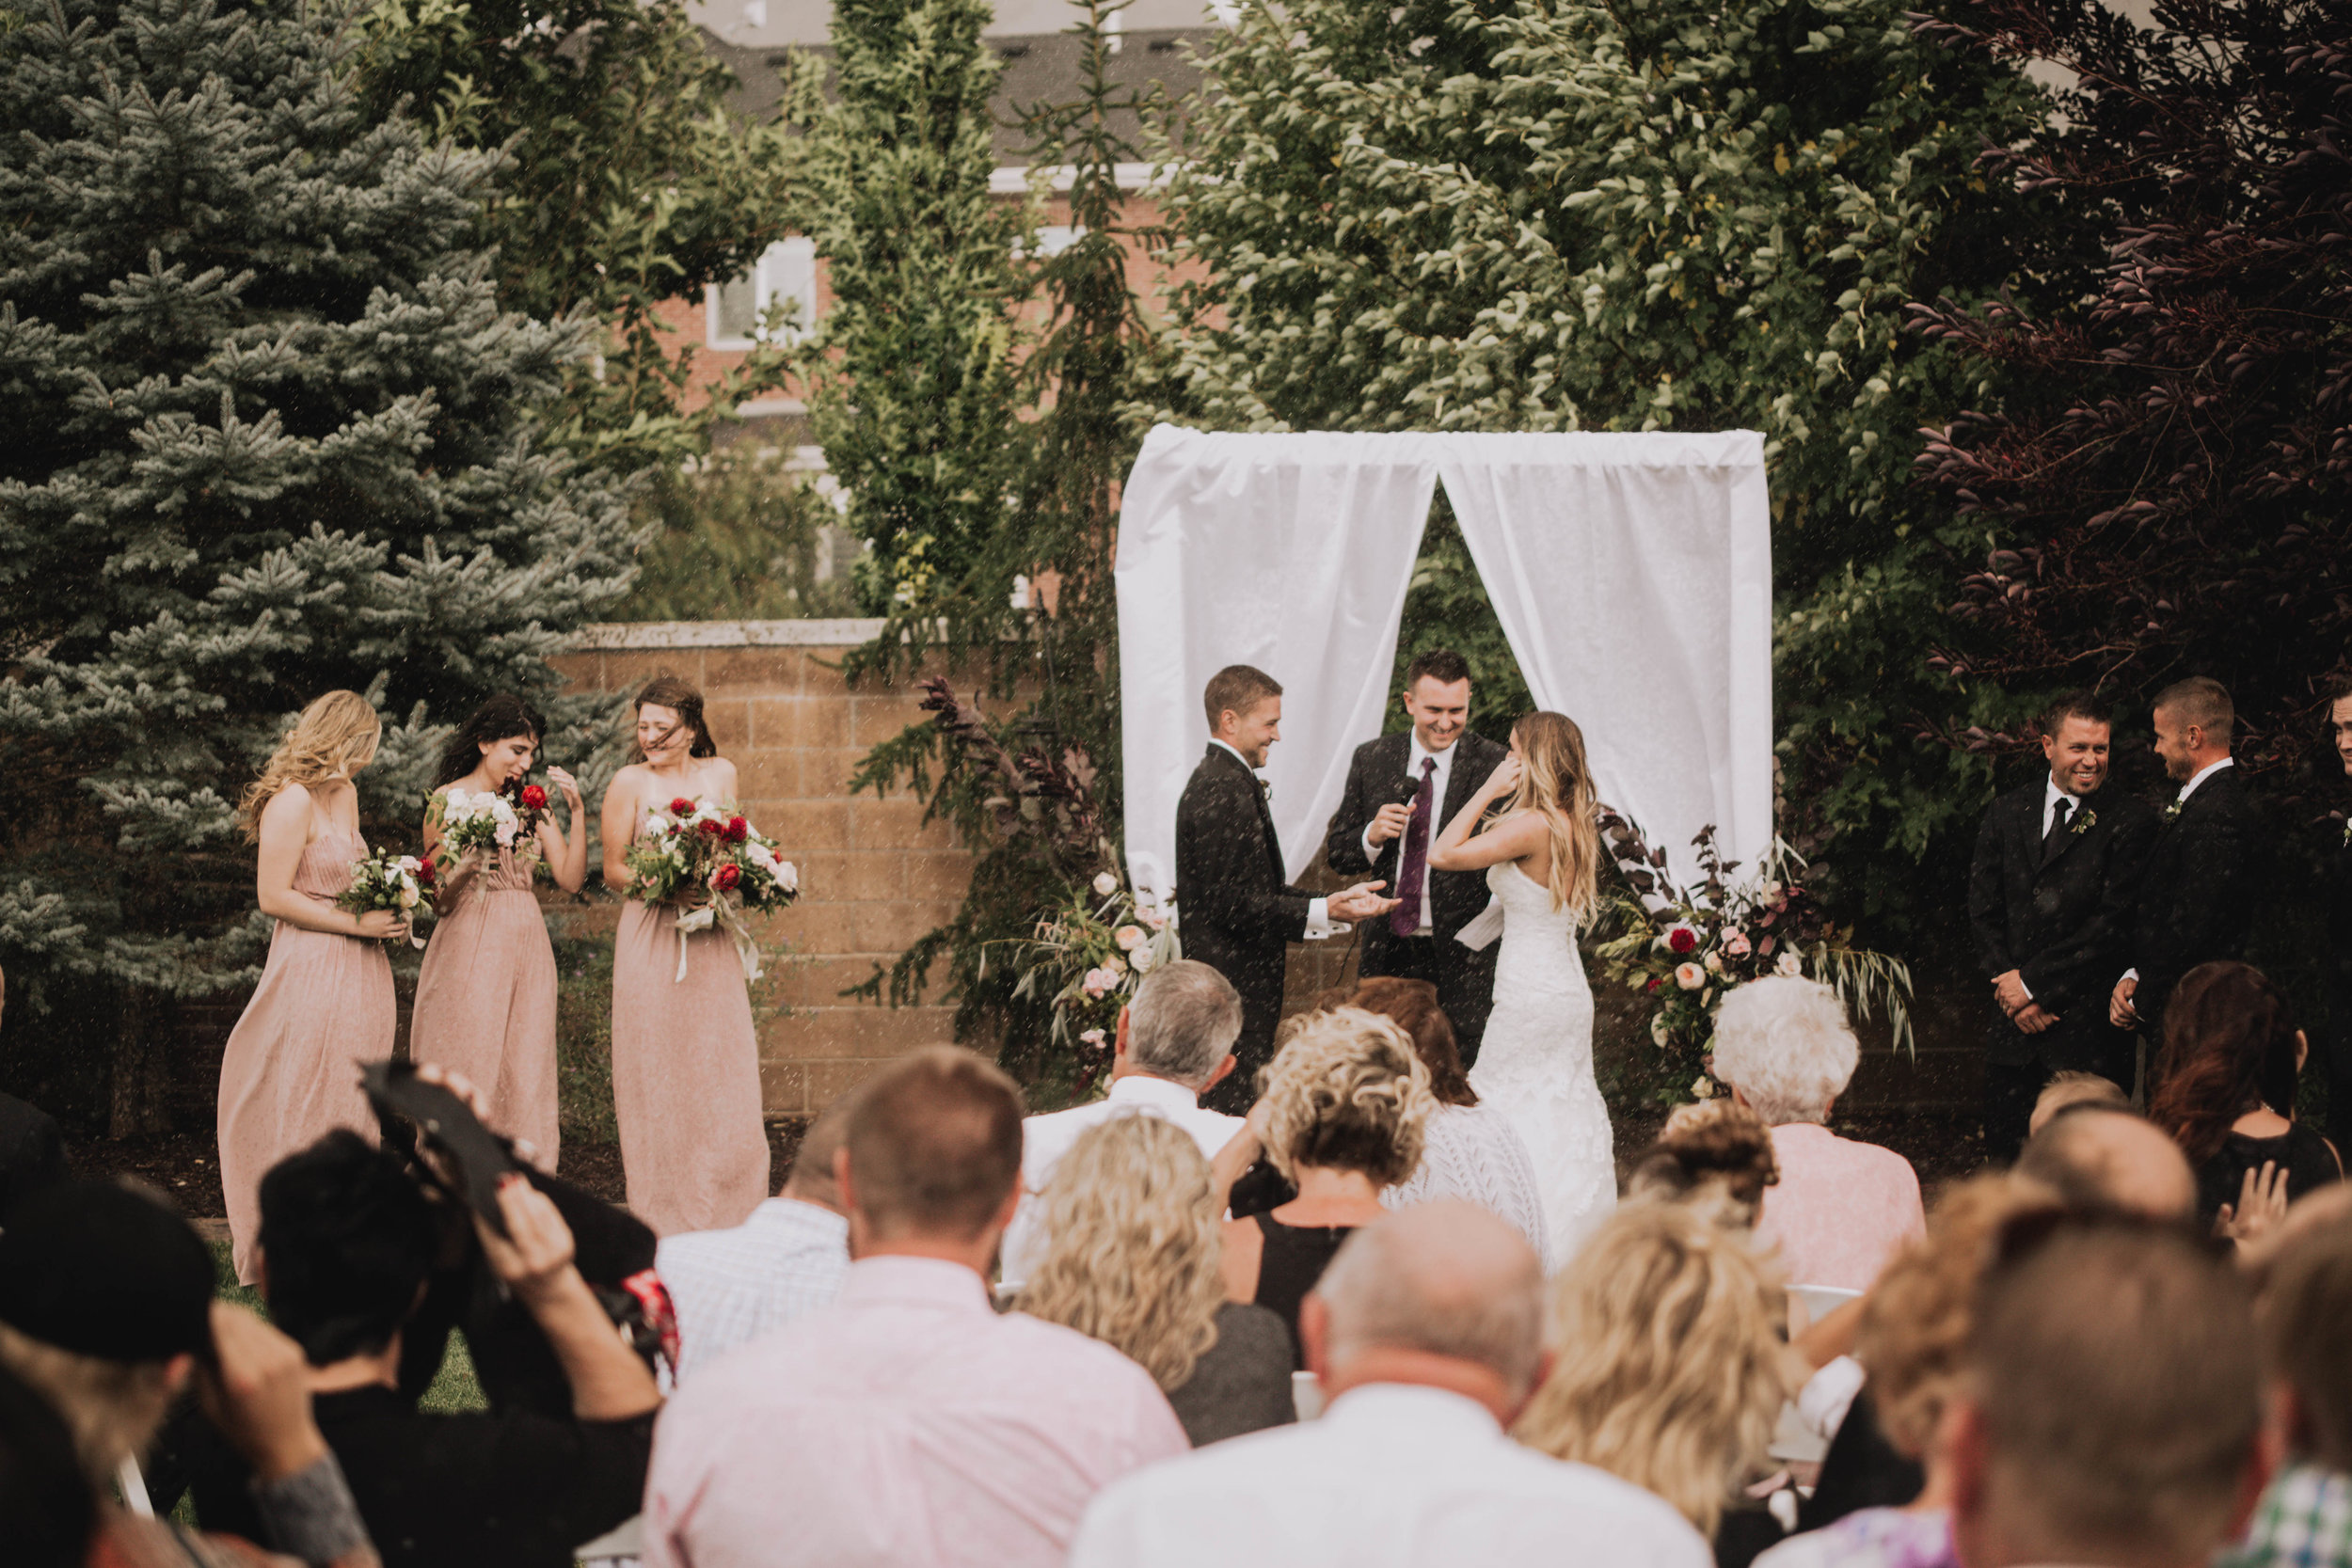 Utah Photographer, Utah Wedding Photographer, Backyard Wedding, Megan and Kevin Buchanan 10.jpg